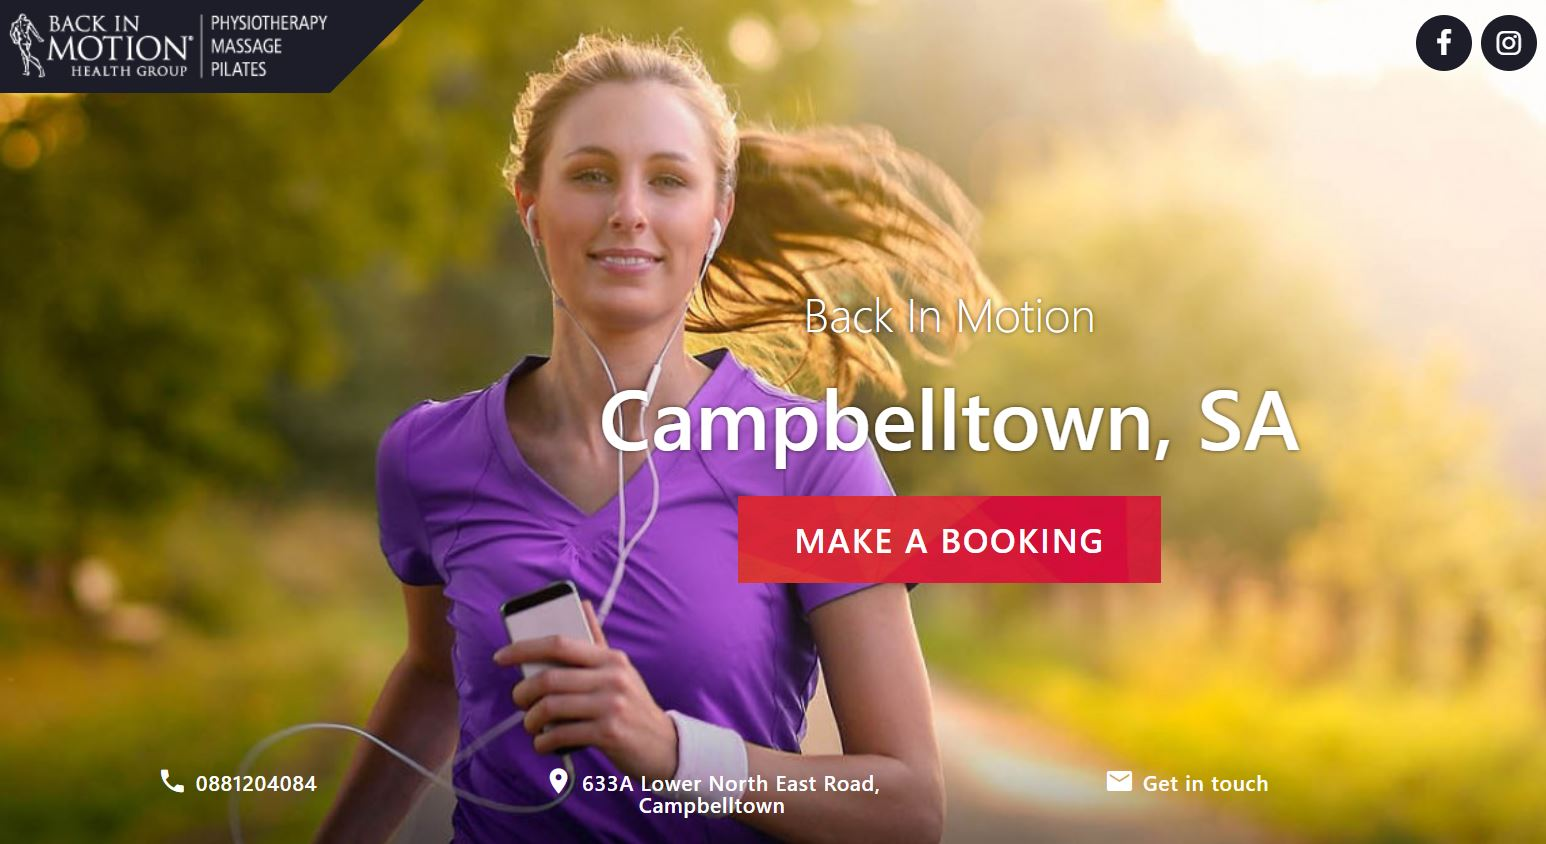 Back In Motion – Campbelltown